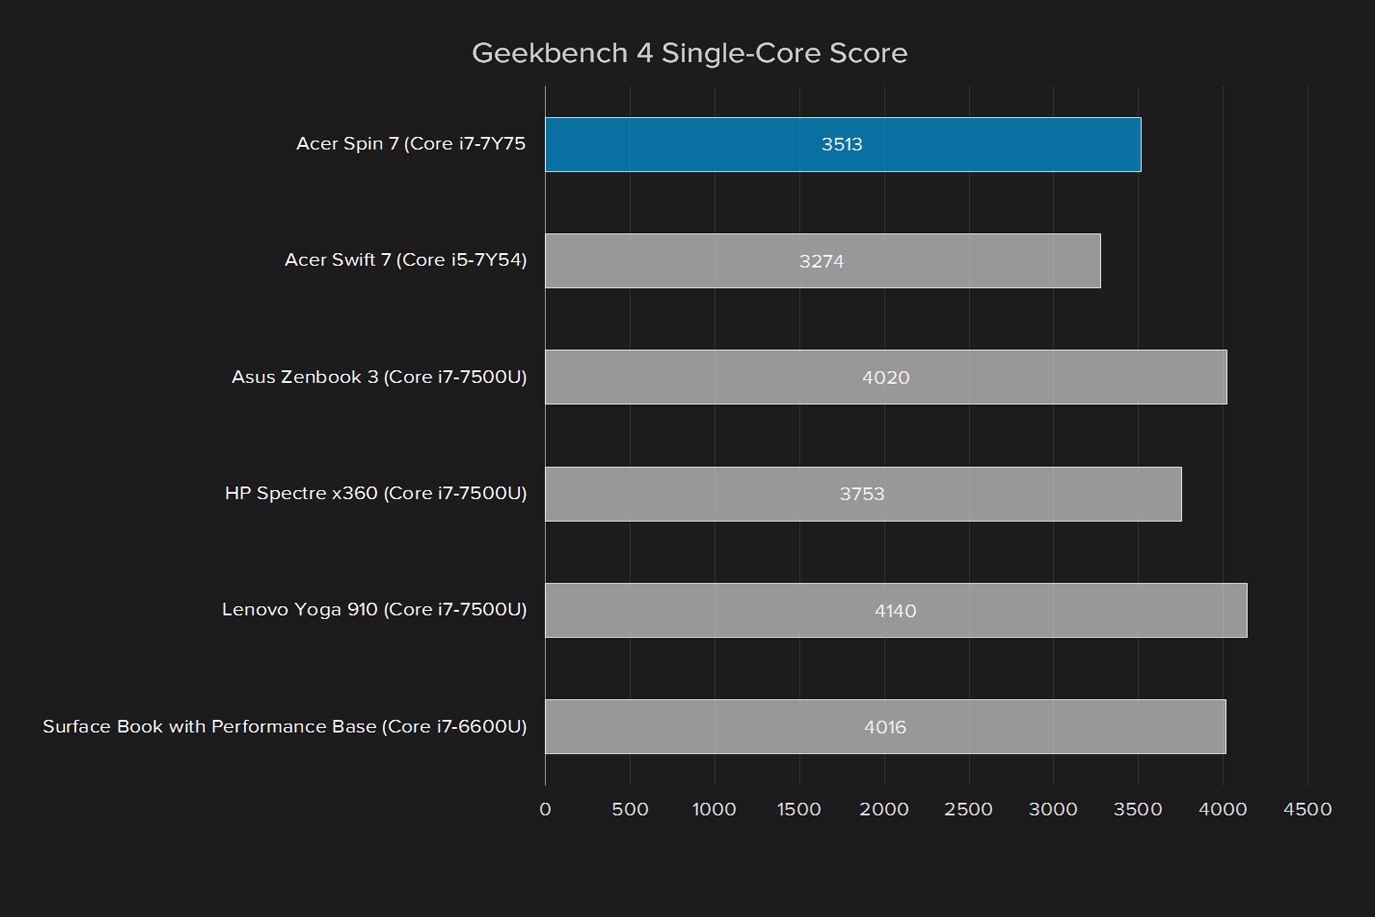 acer spin 7 review geekbench single core score